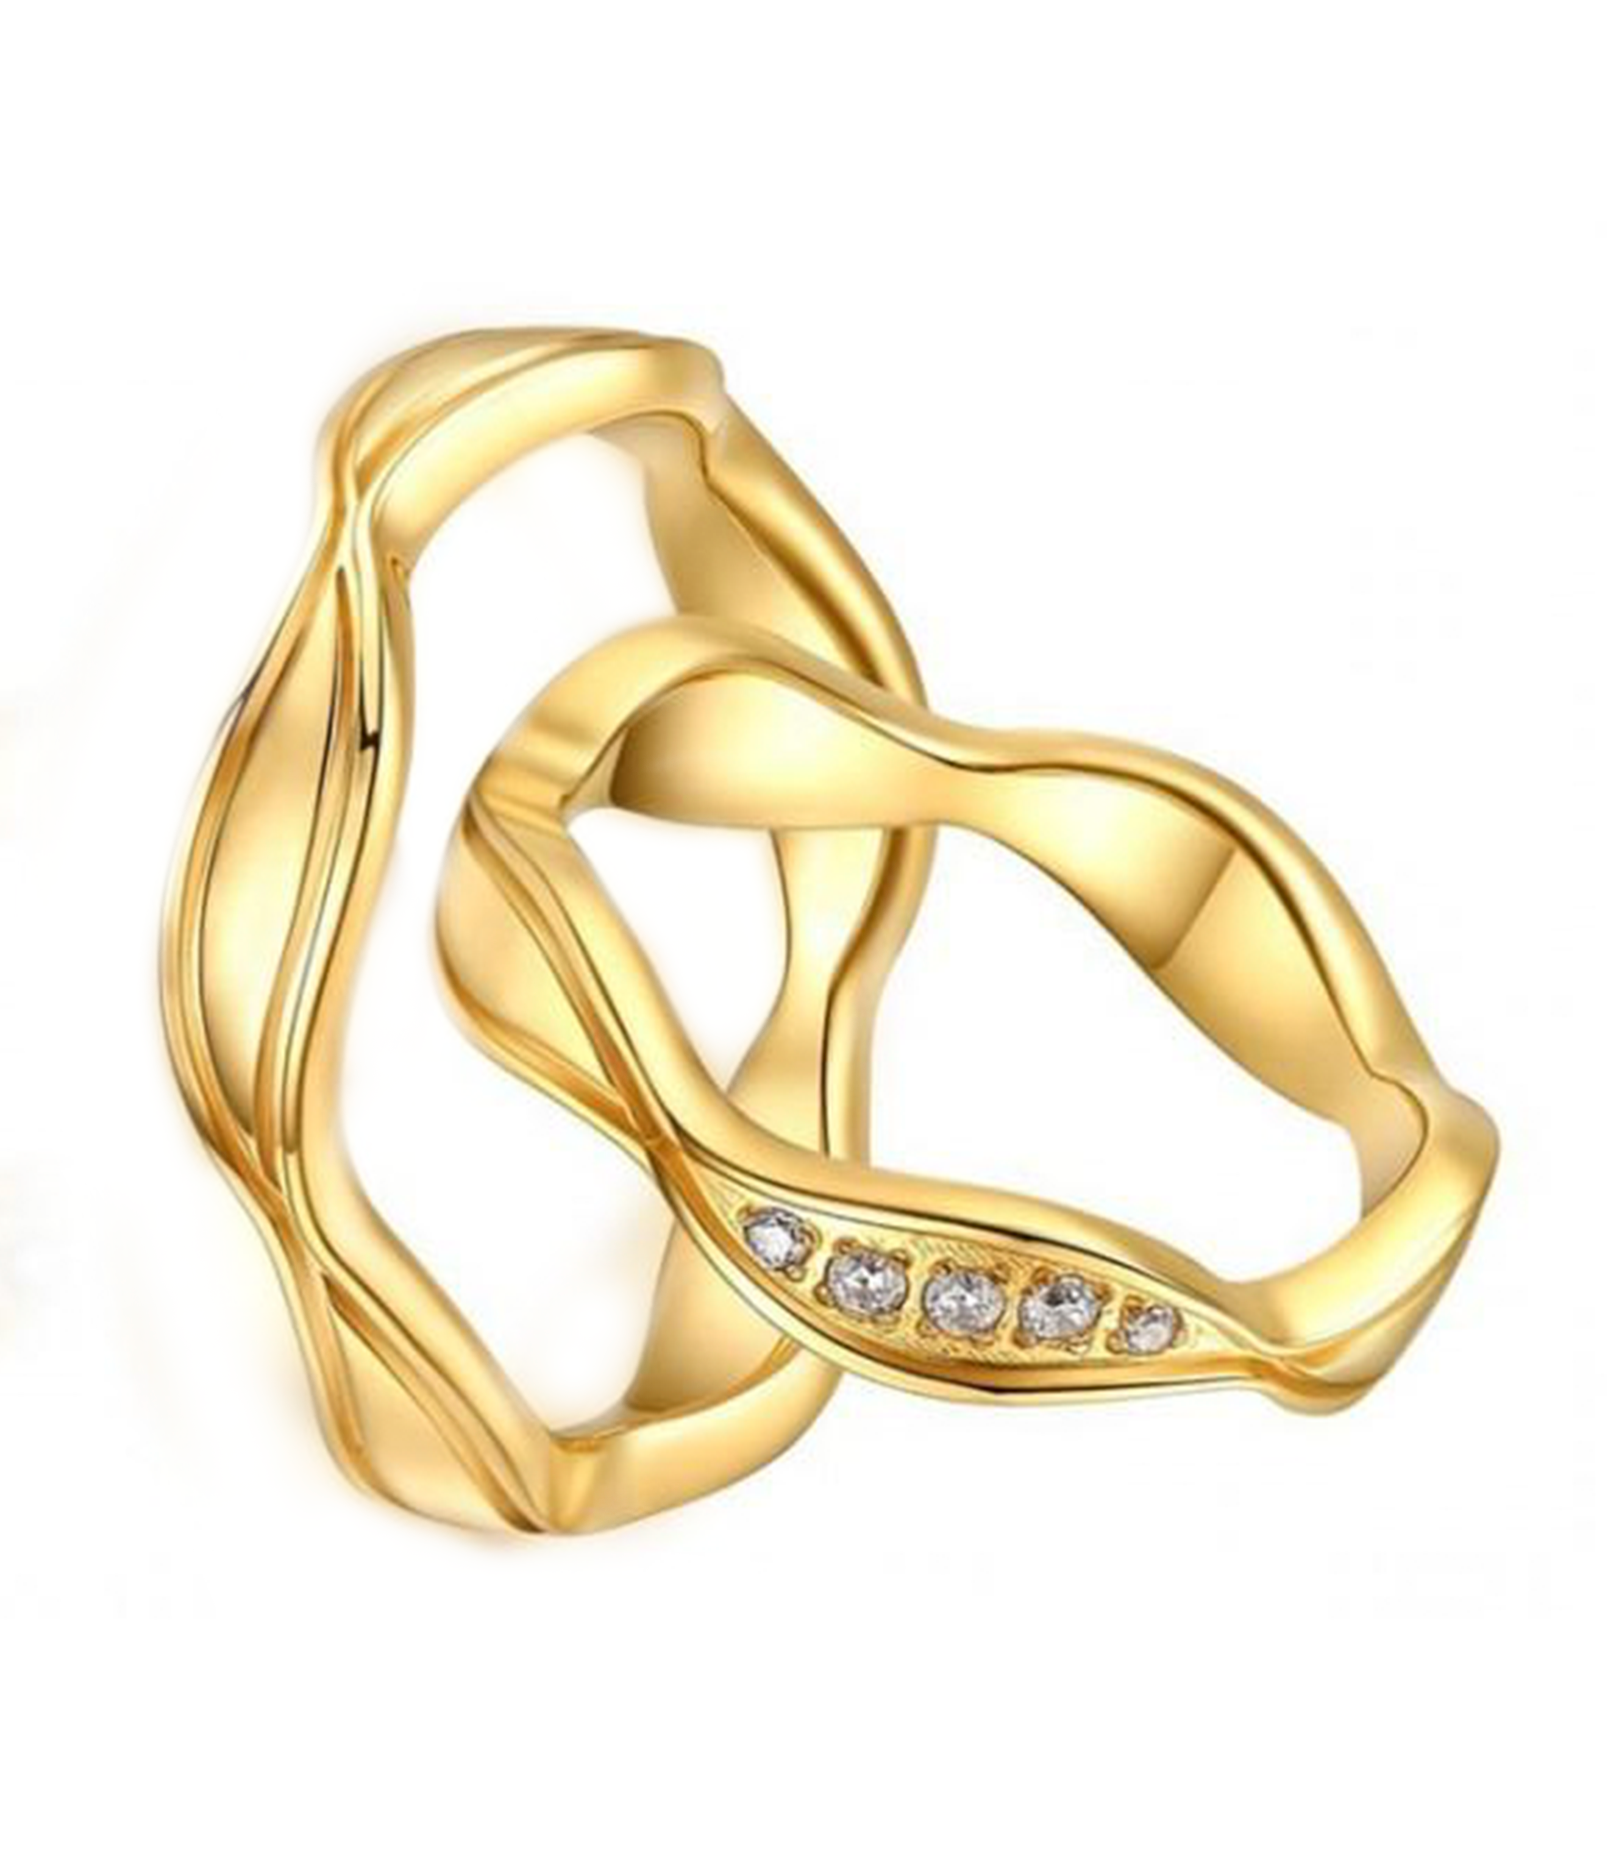 Alexis Gold Plated Titanium Wedding Ring with Swarovski Crystals (Men)